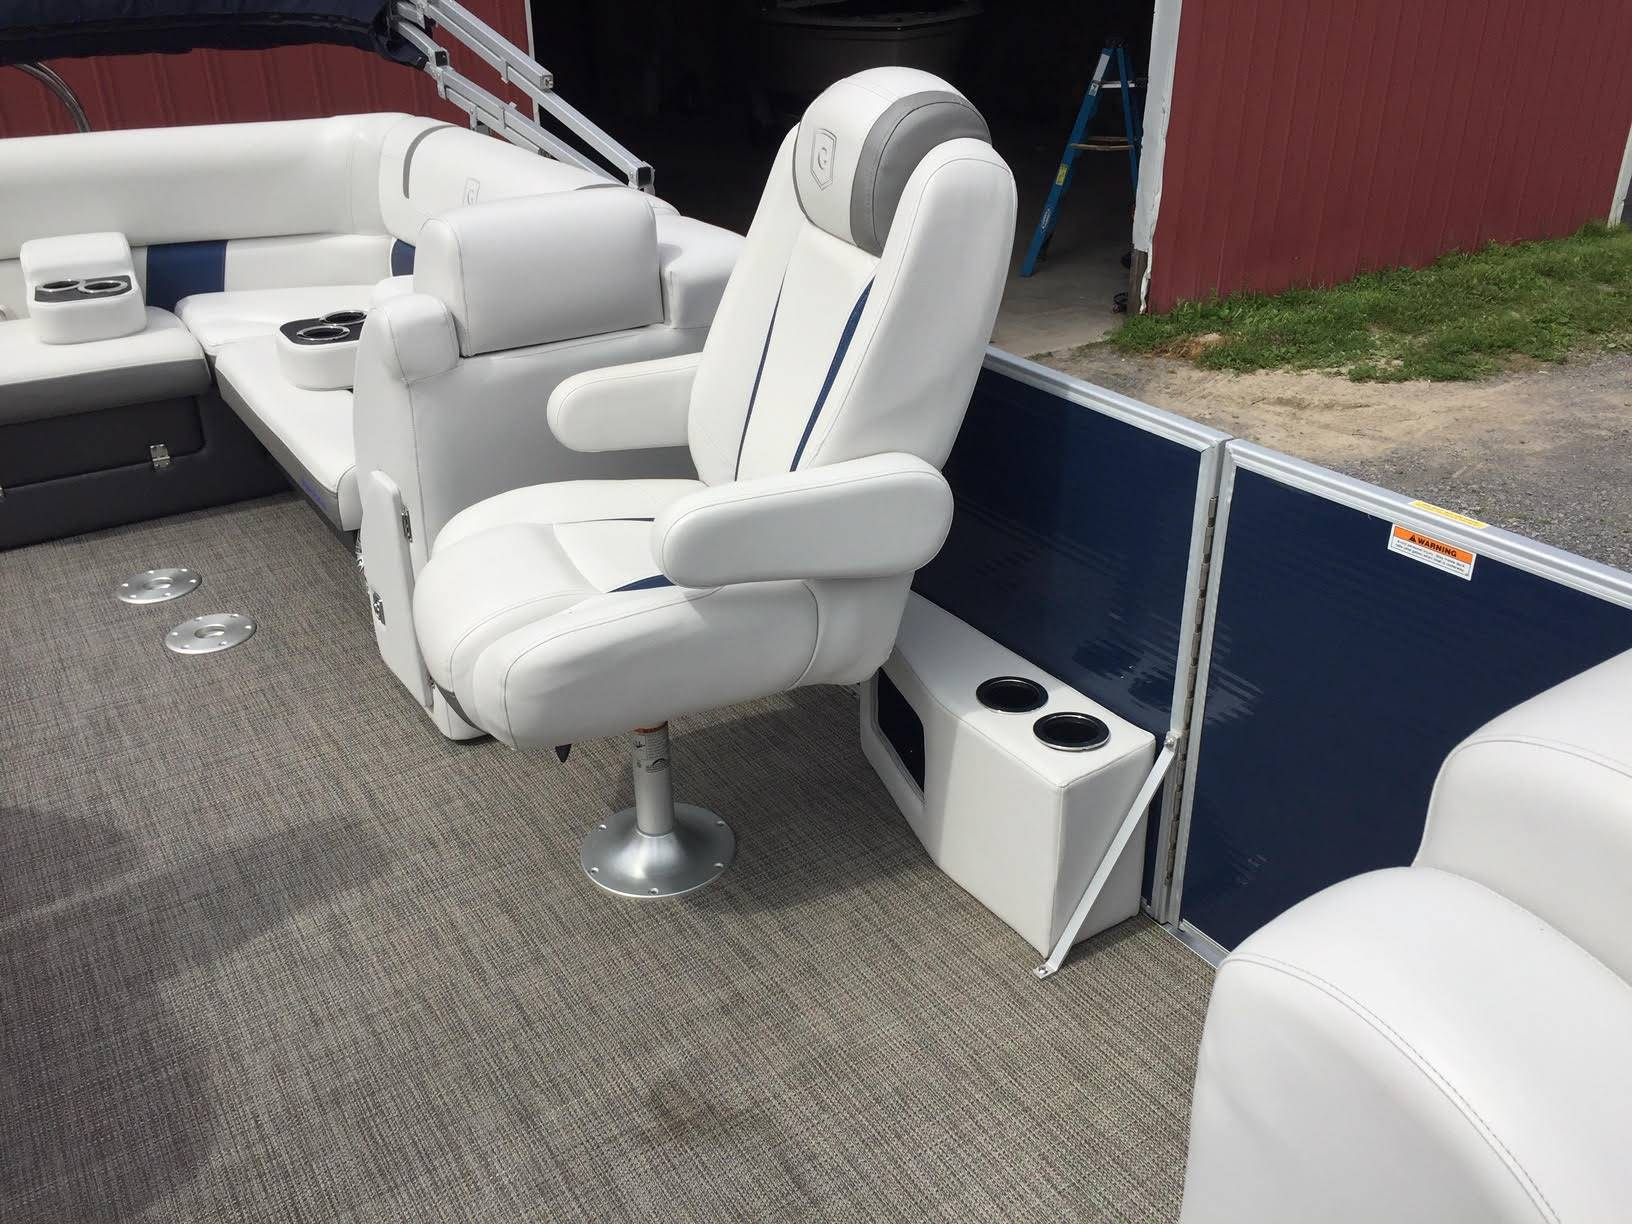 2017 AquaPatio 235 UL in Bridgeport, New York - Photo 17